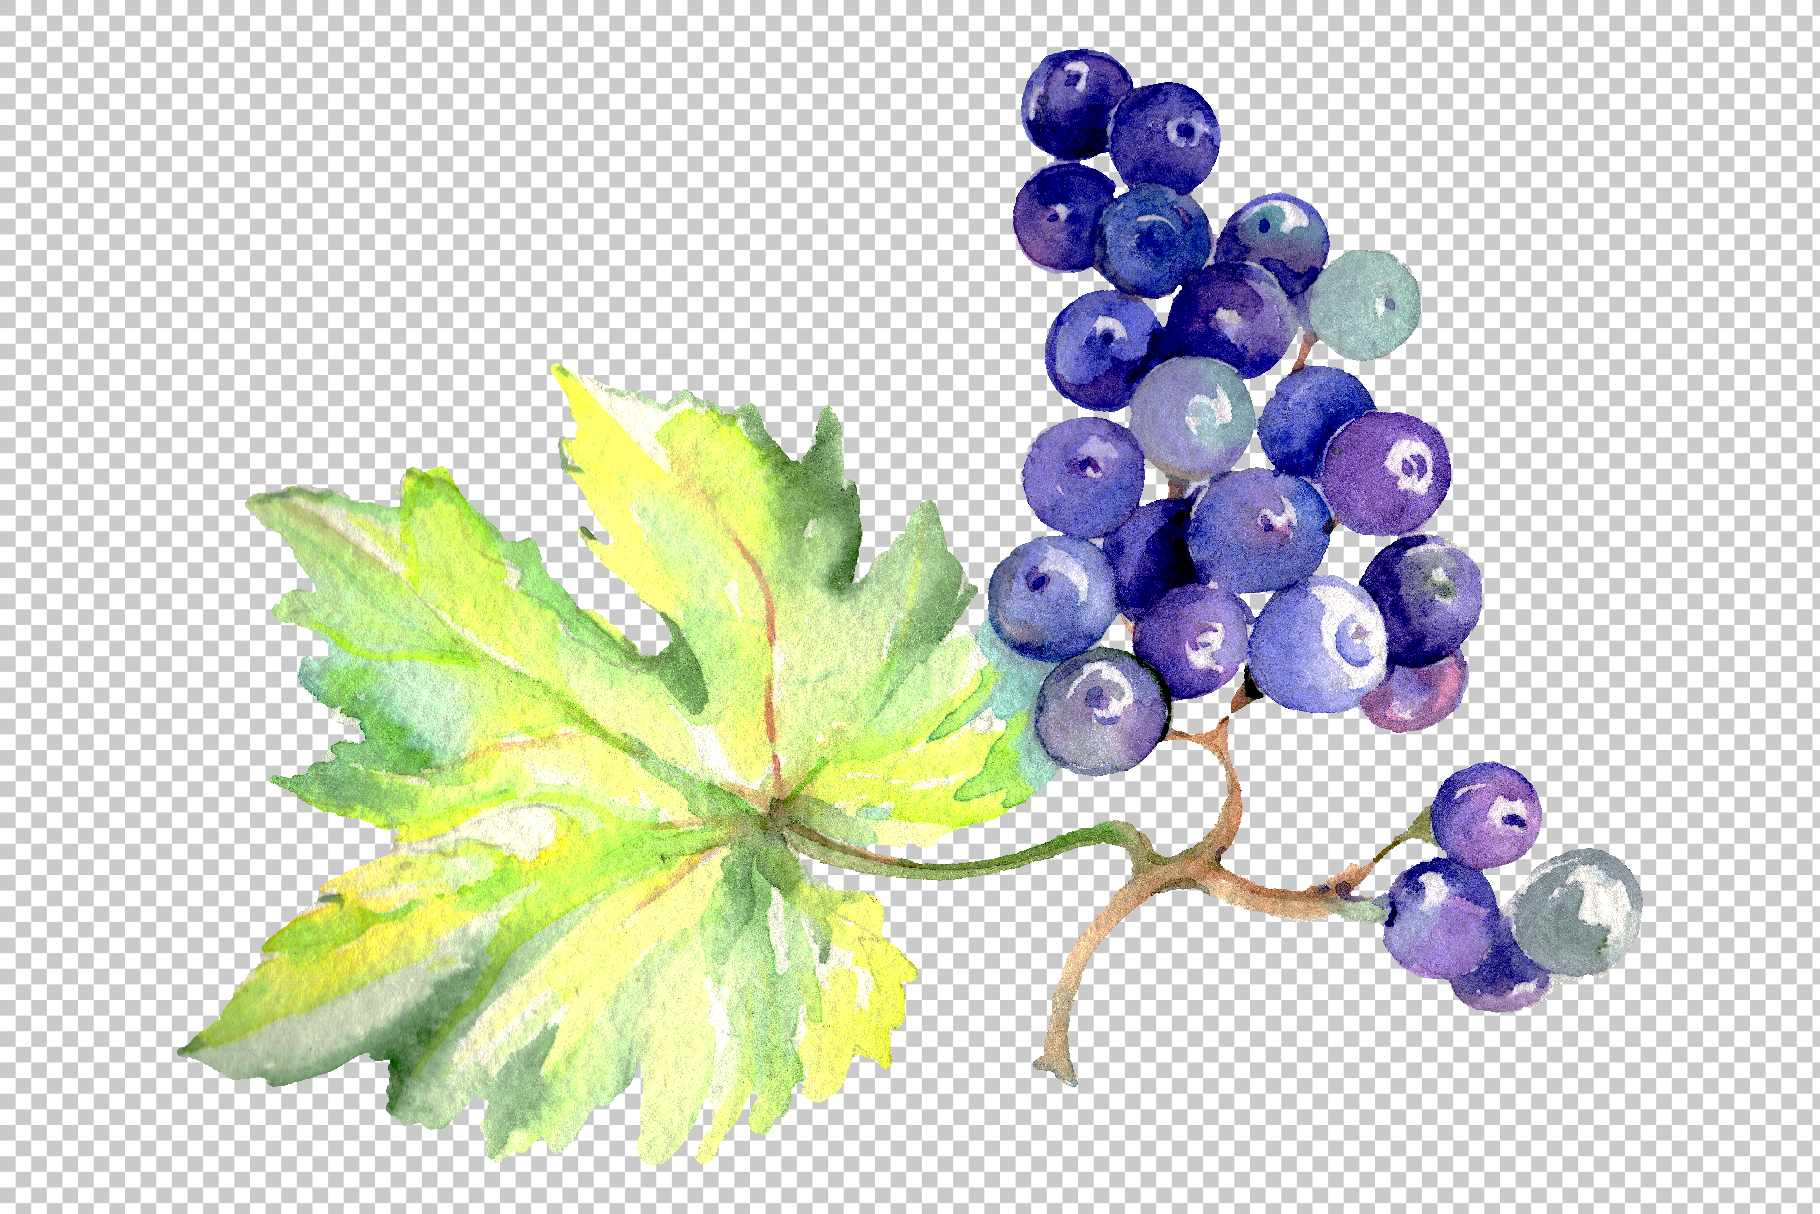 Grapes Watercolor png example image 9